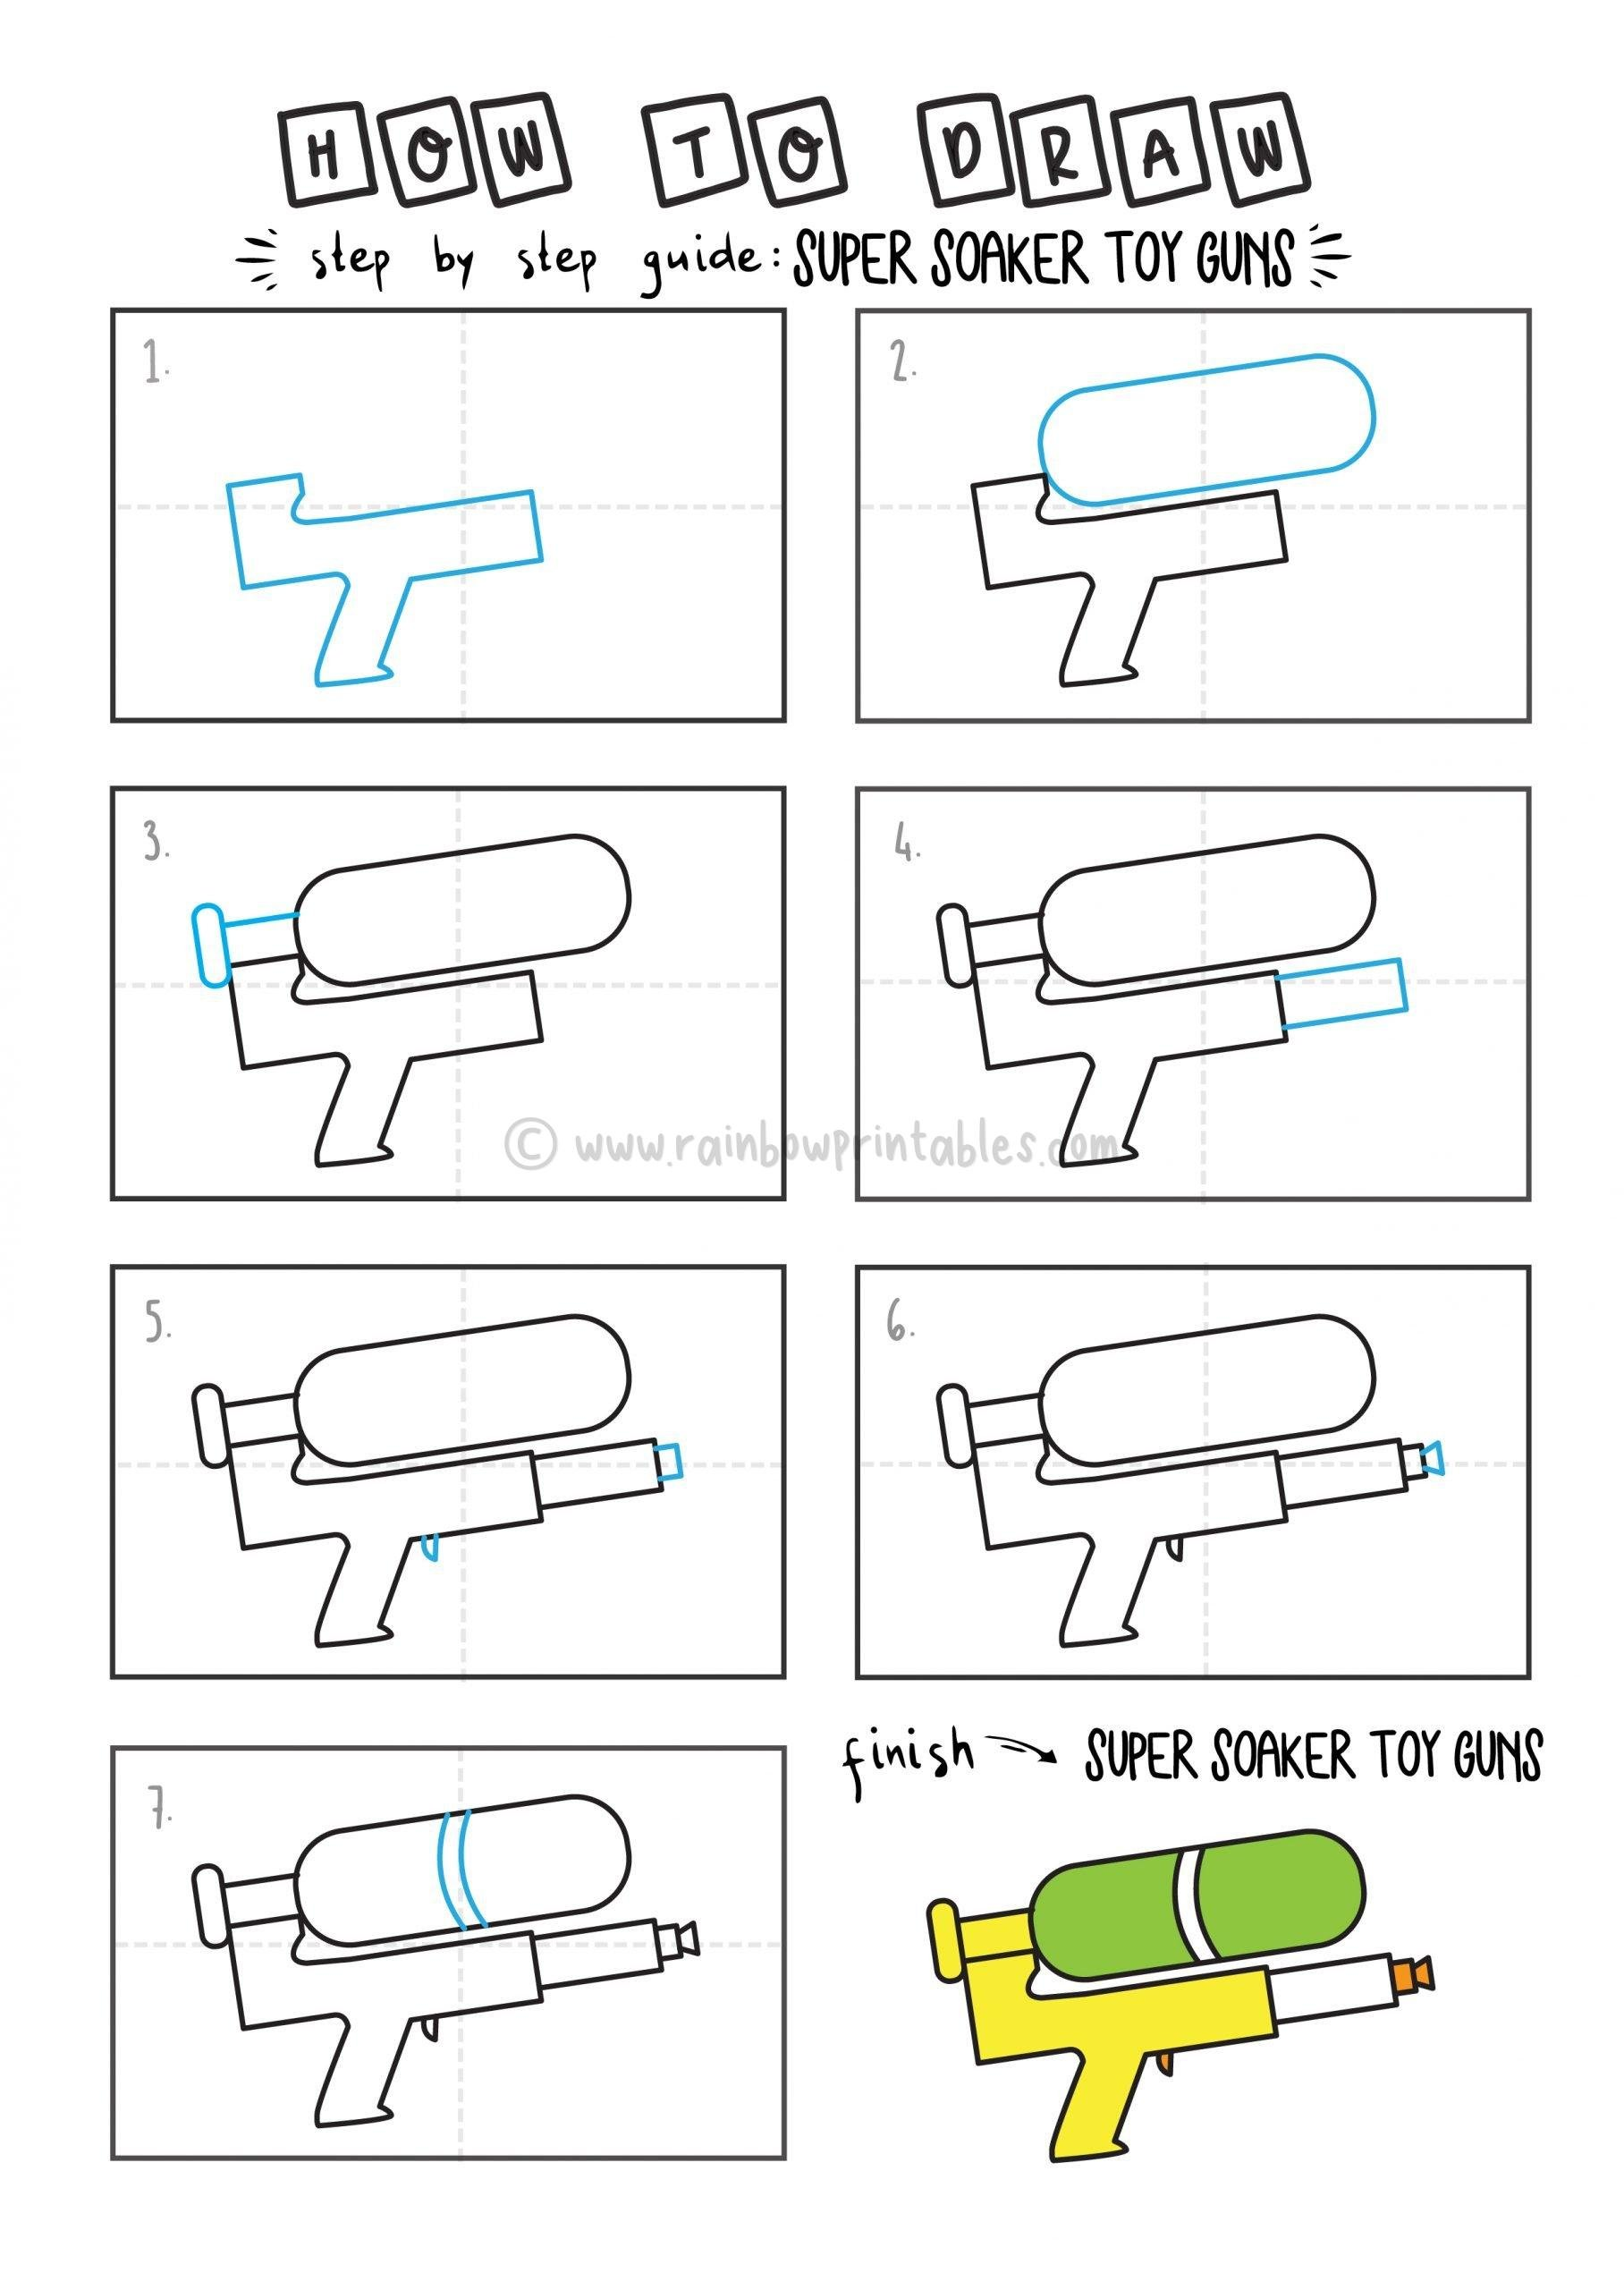 How To Draw WATER GUN SUPER SOAKER By Step For Kids Easy Illustration Doodle Drawing GUIDE2